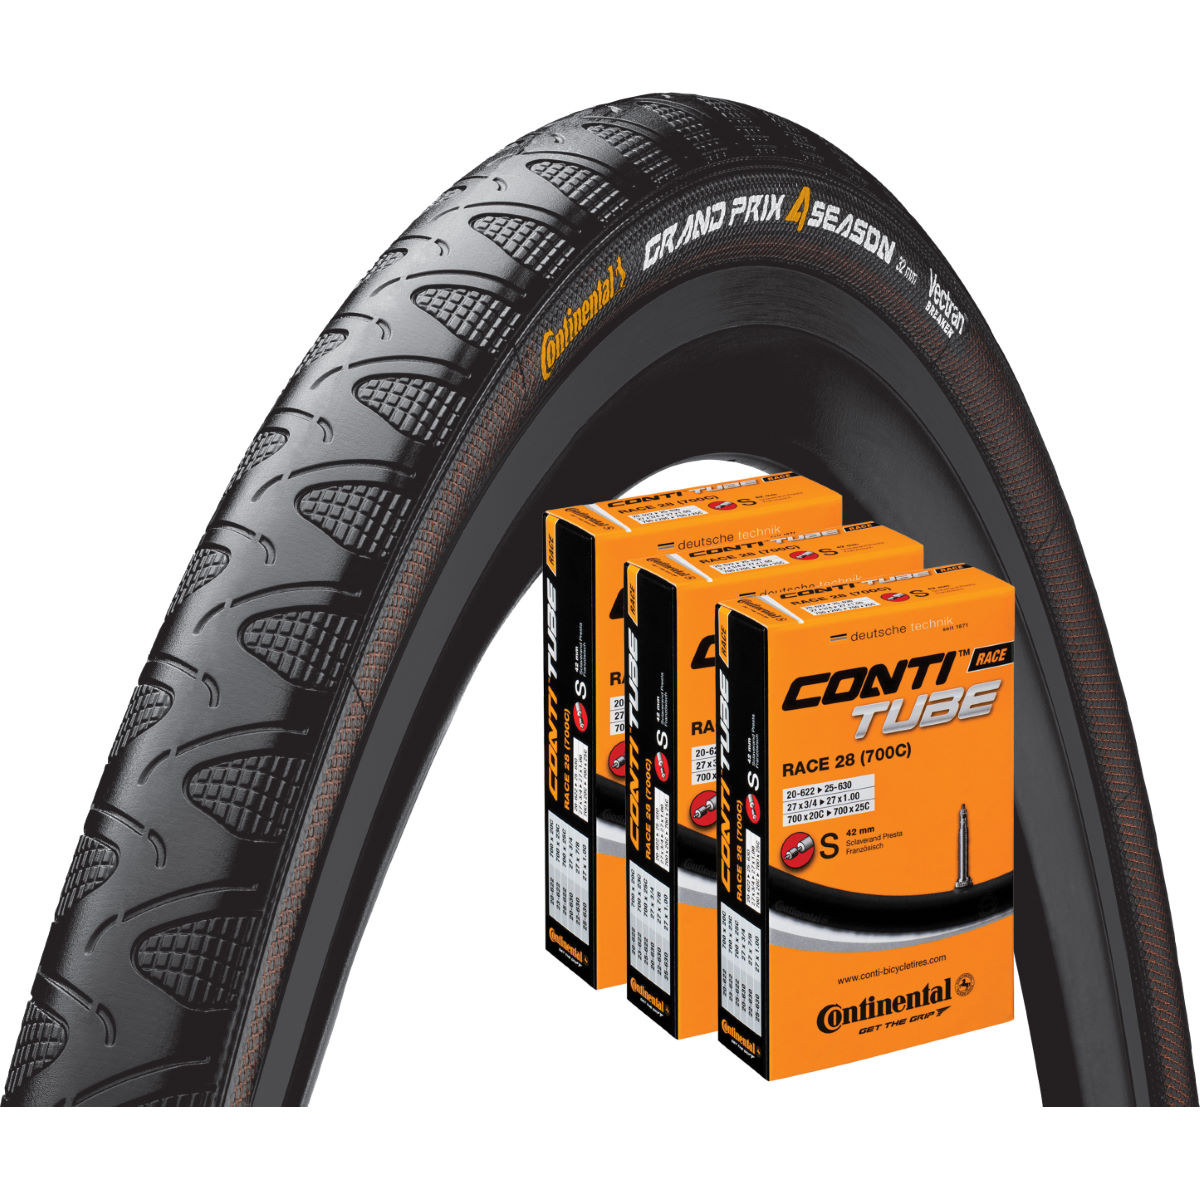 Continental Continental Grand Prix 4 Season 23c Tyre + 3 Tubes   Tyres